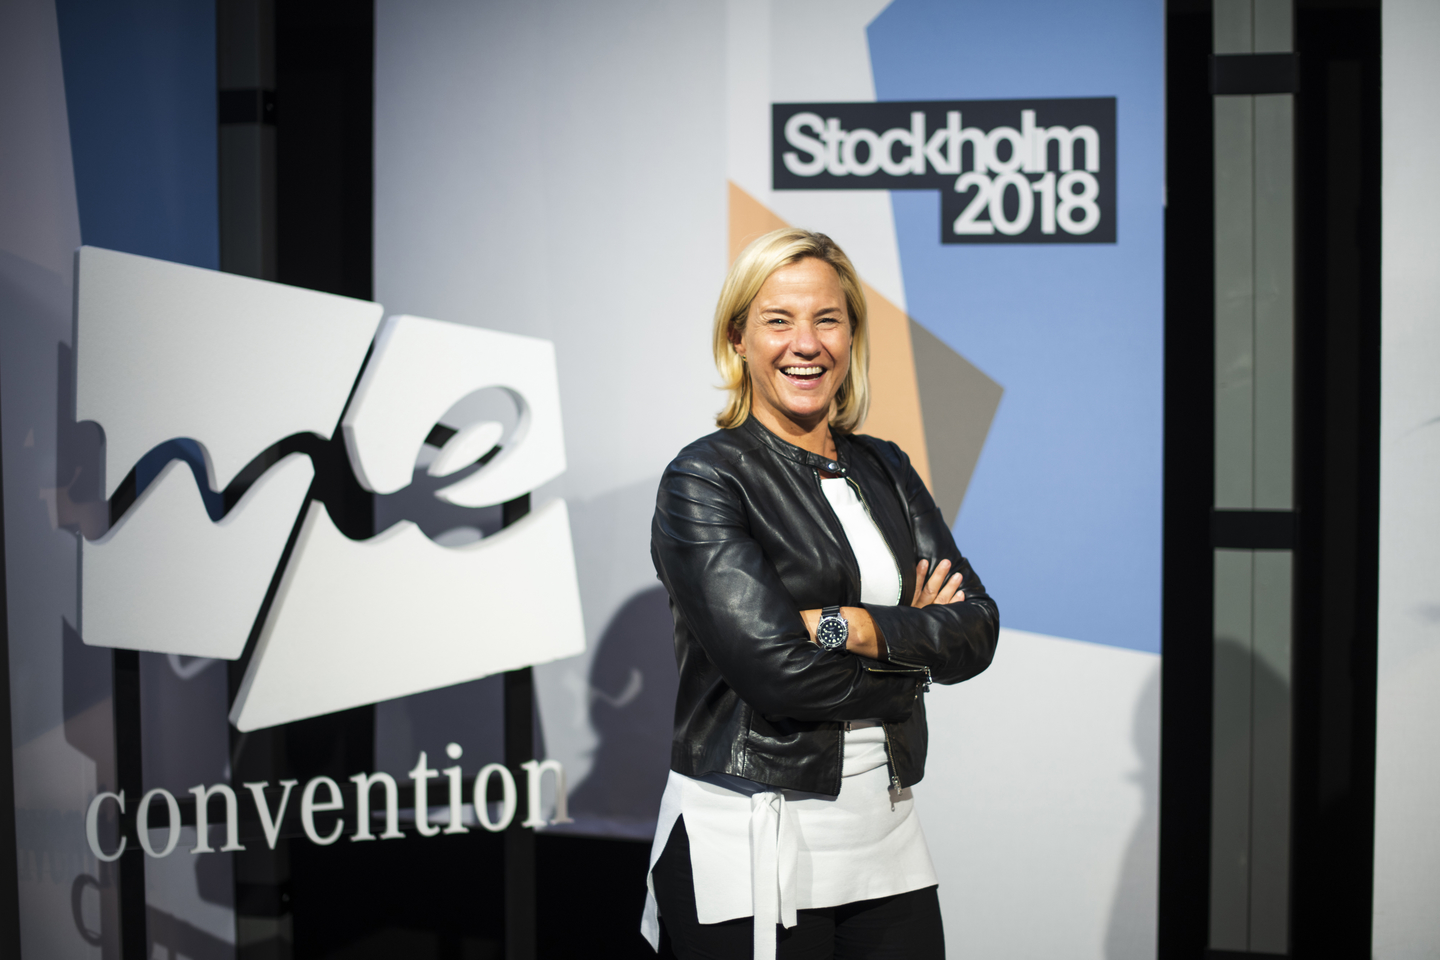 Britta Seeger, Mercedes-Benz Cars Marketing & Sales and Member of the Board of Management of Daimler AG. Photo by Teymur Madjderey/Daimler AG